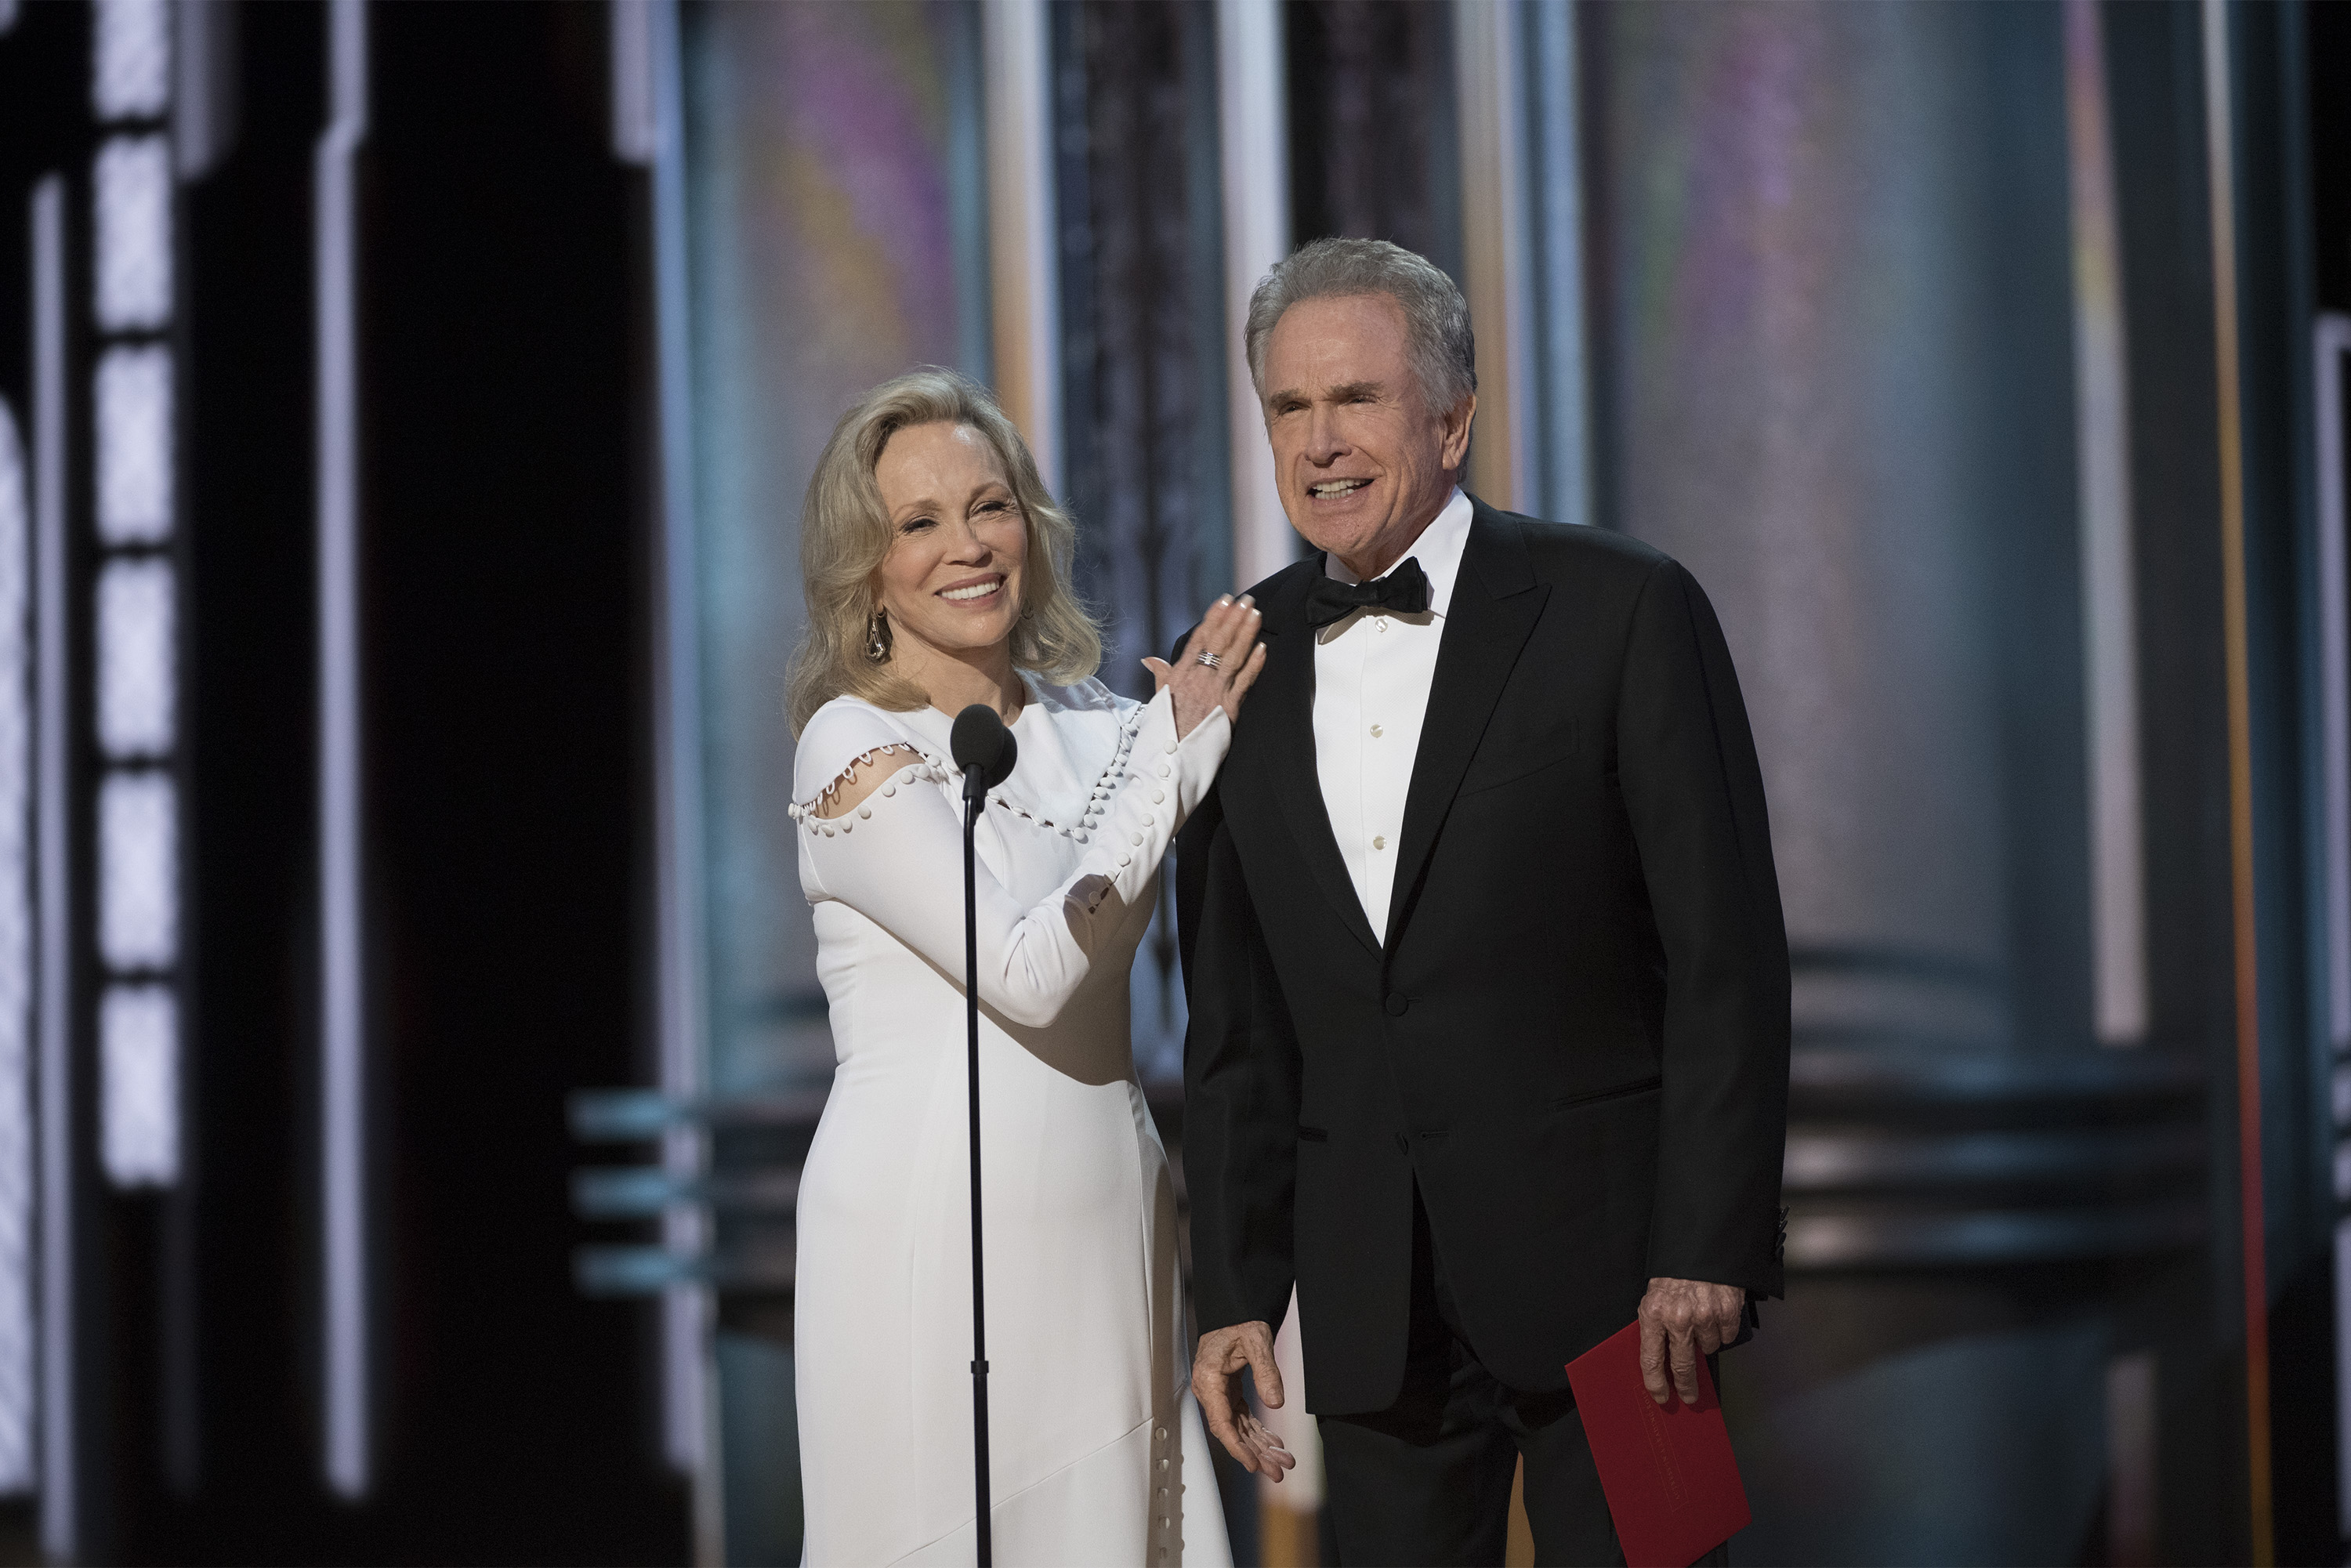 #Oscars: Beatty, Dunaway to present Best Picture Award despite 2017 fiasco